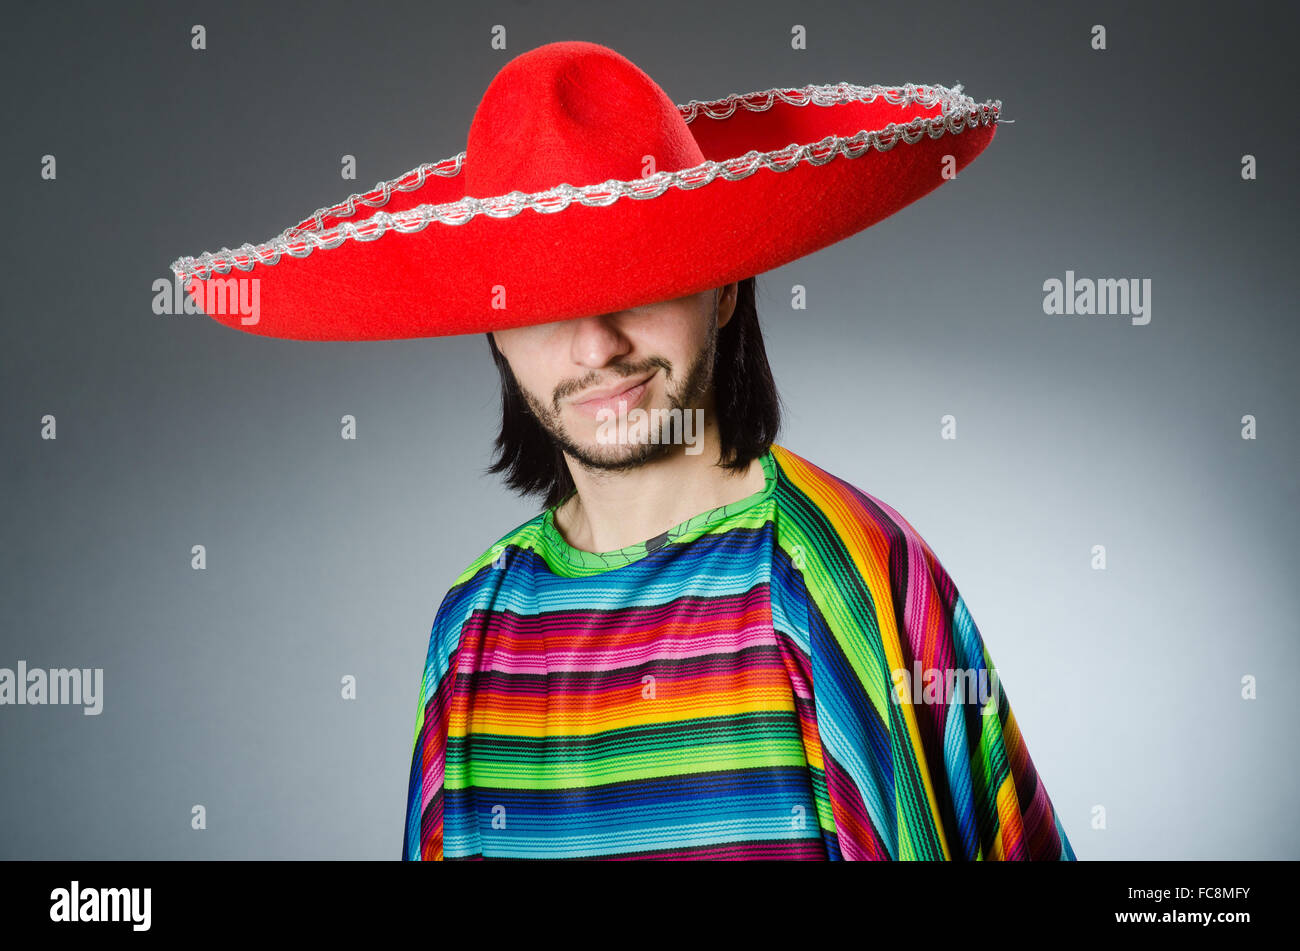 Funny mexican wearing sombrero hat Stock Photo  93619455 - Alamy 0a6523532d5